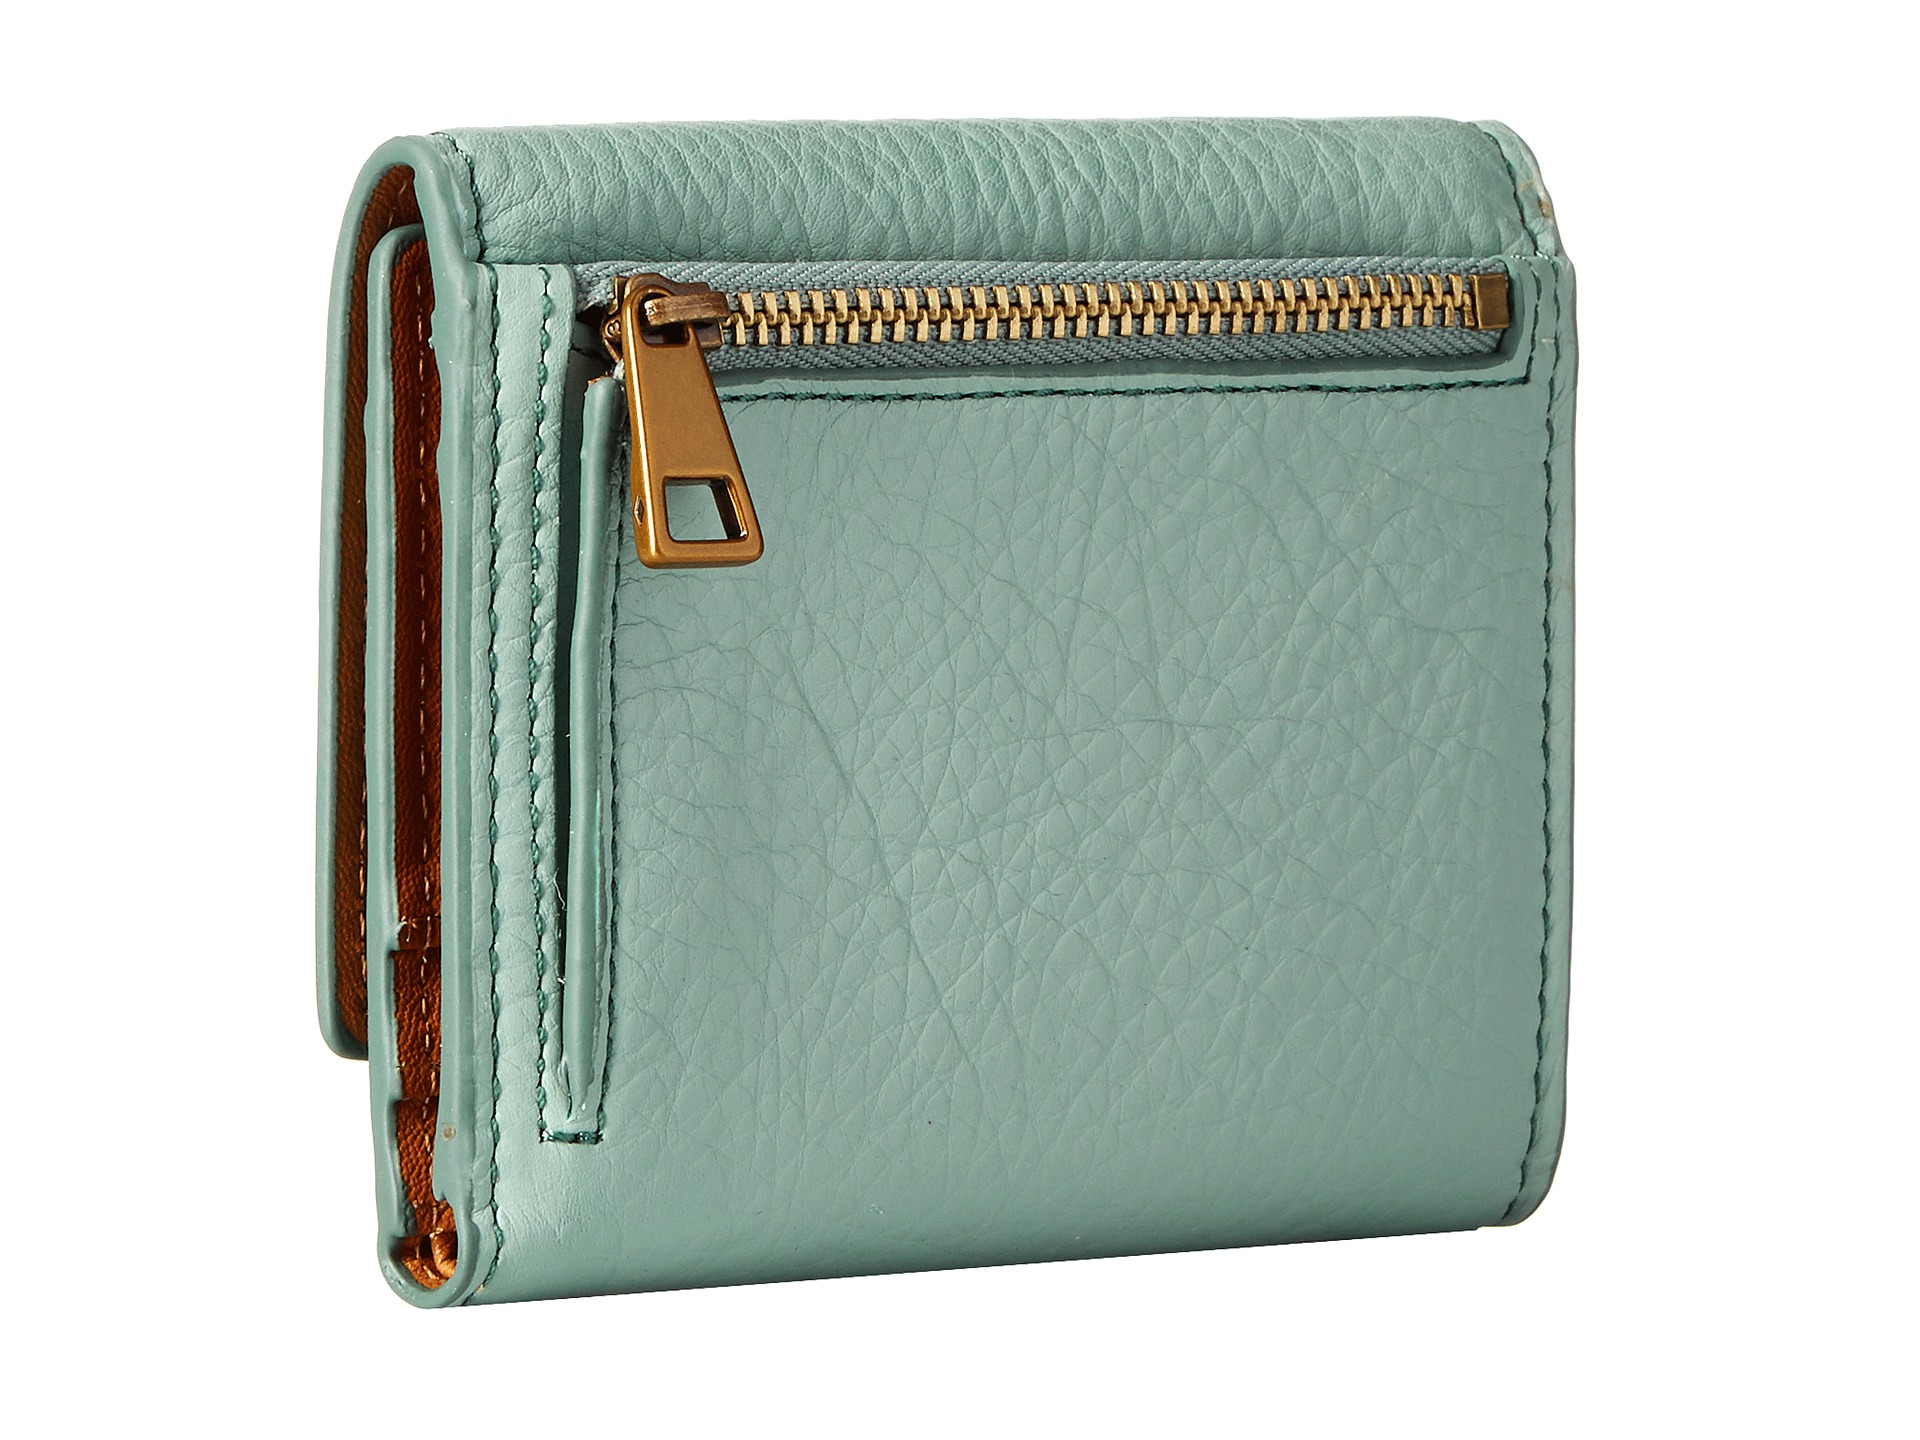 Lyst Fossil Emerson Trifold In Green Satchel Seaglass Gallery